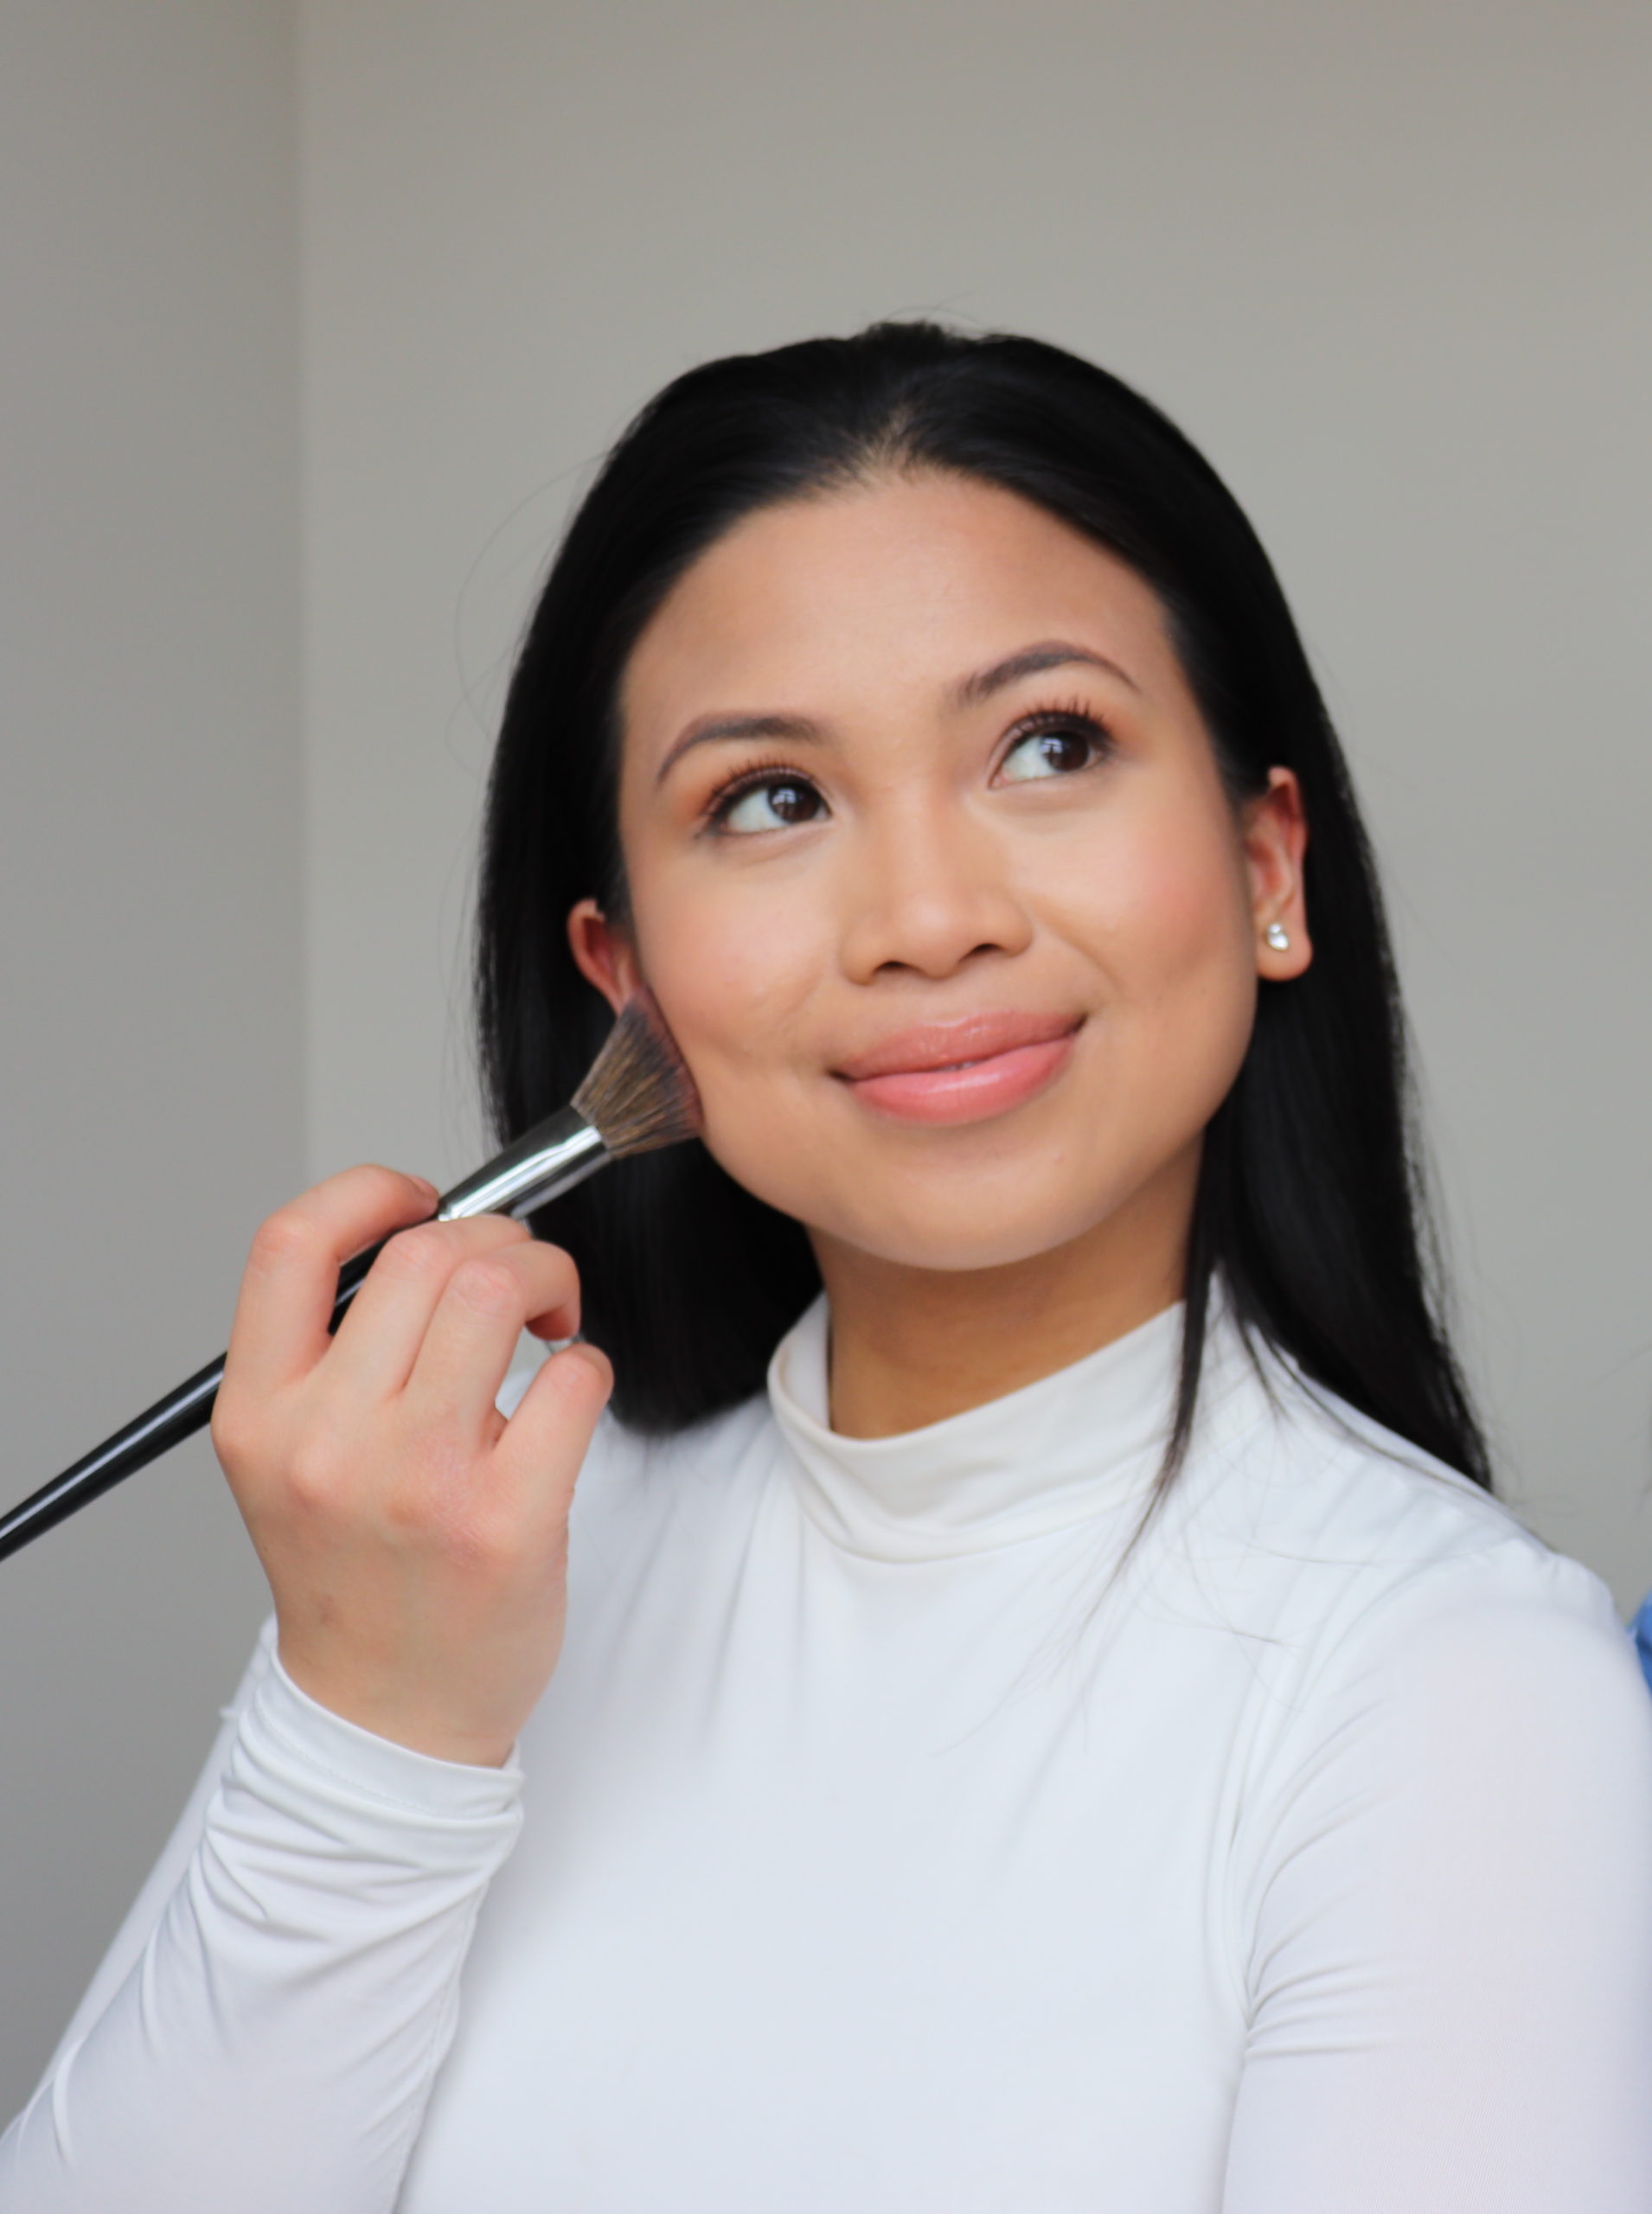 Toronto beauty blogger Nathalee Pauline uses a makeup brush in a tutorial